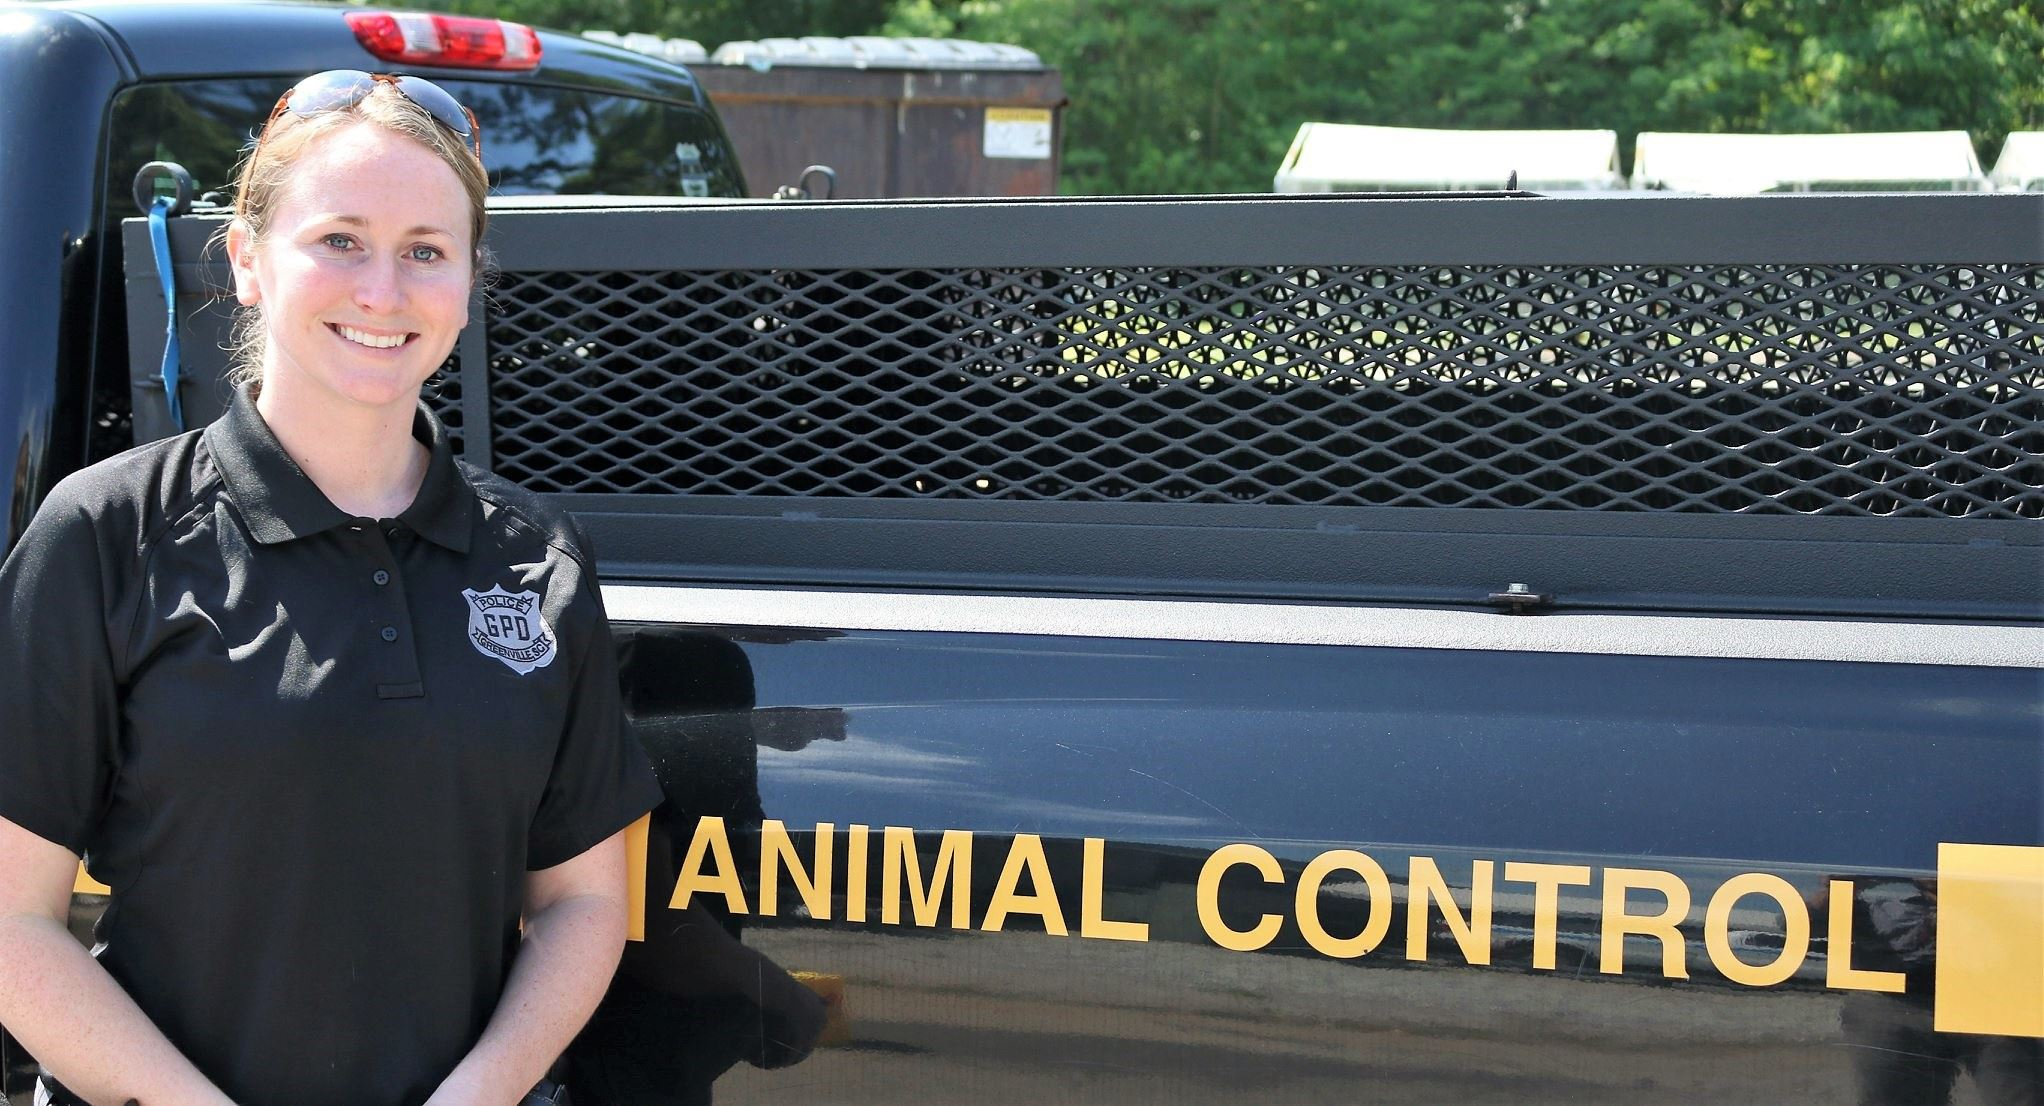 Animal Control | Greenville, SC - Official Website